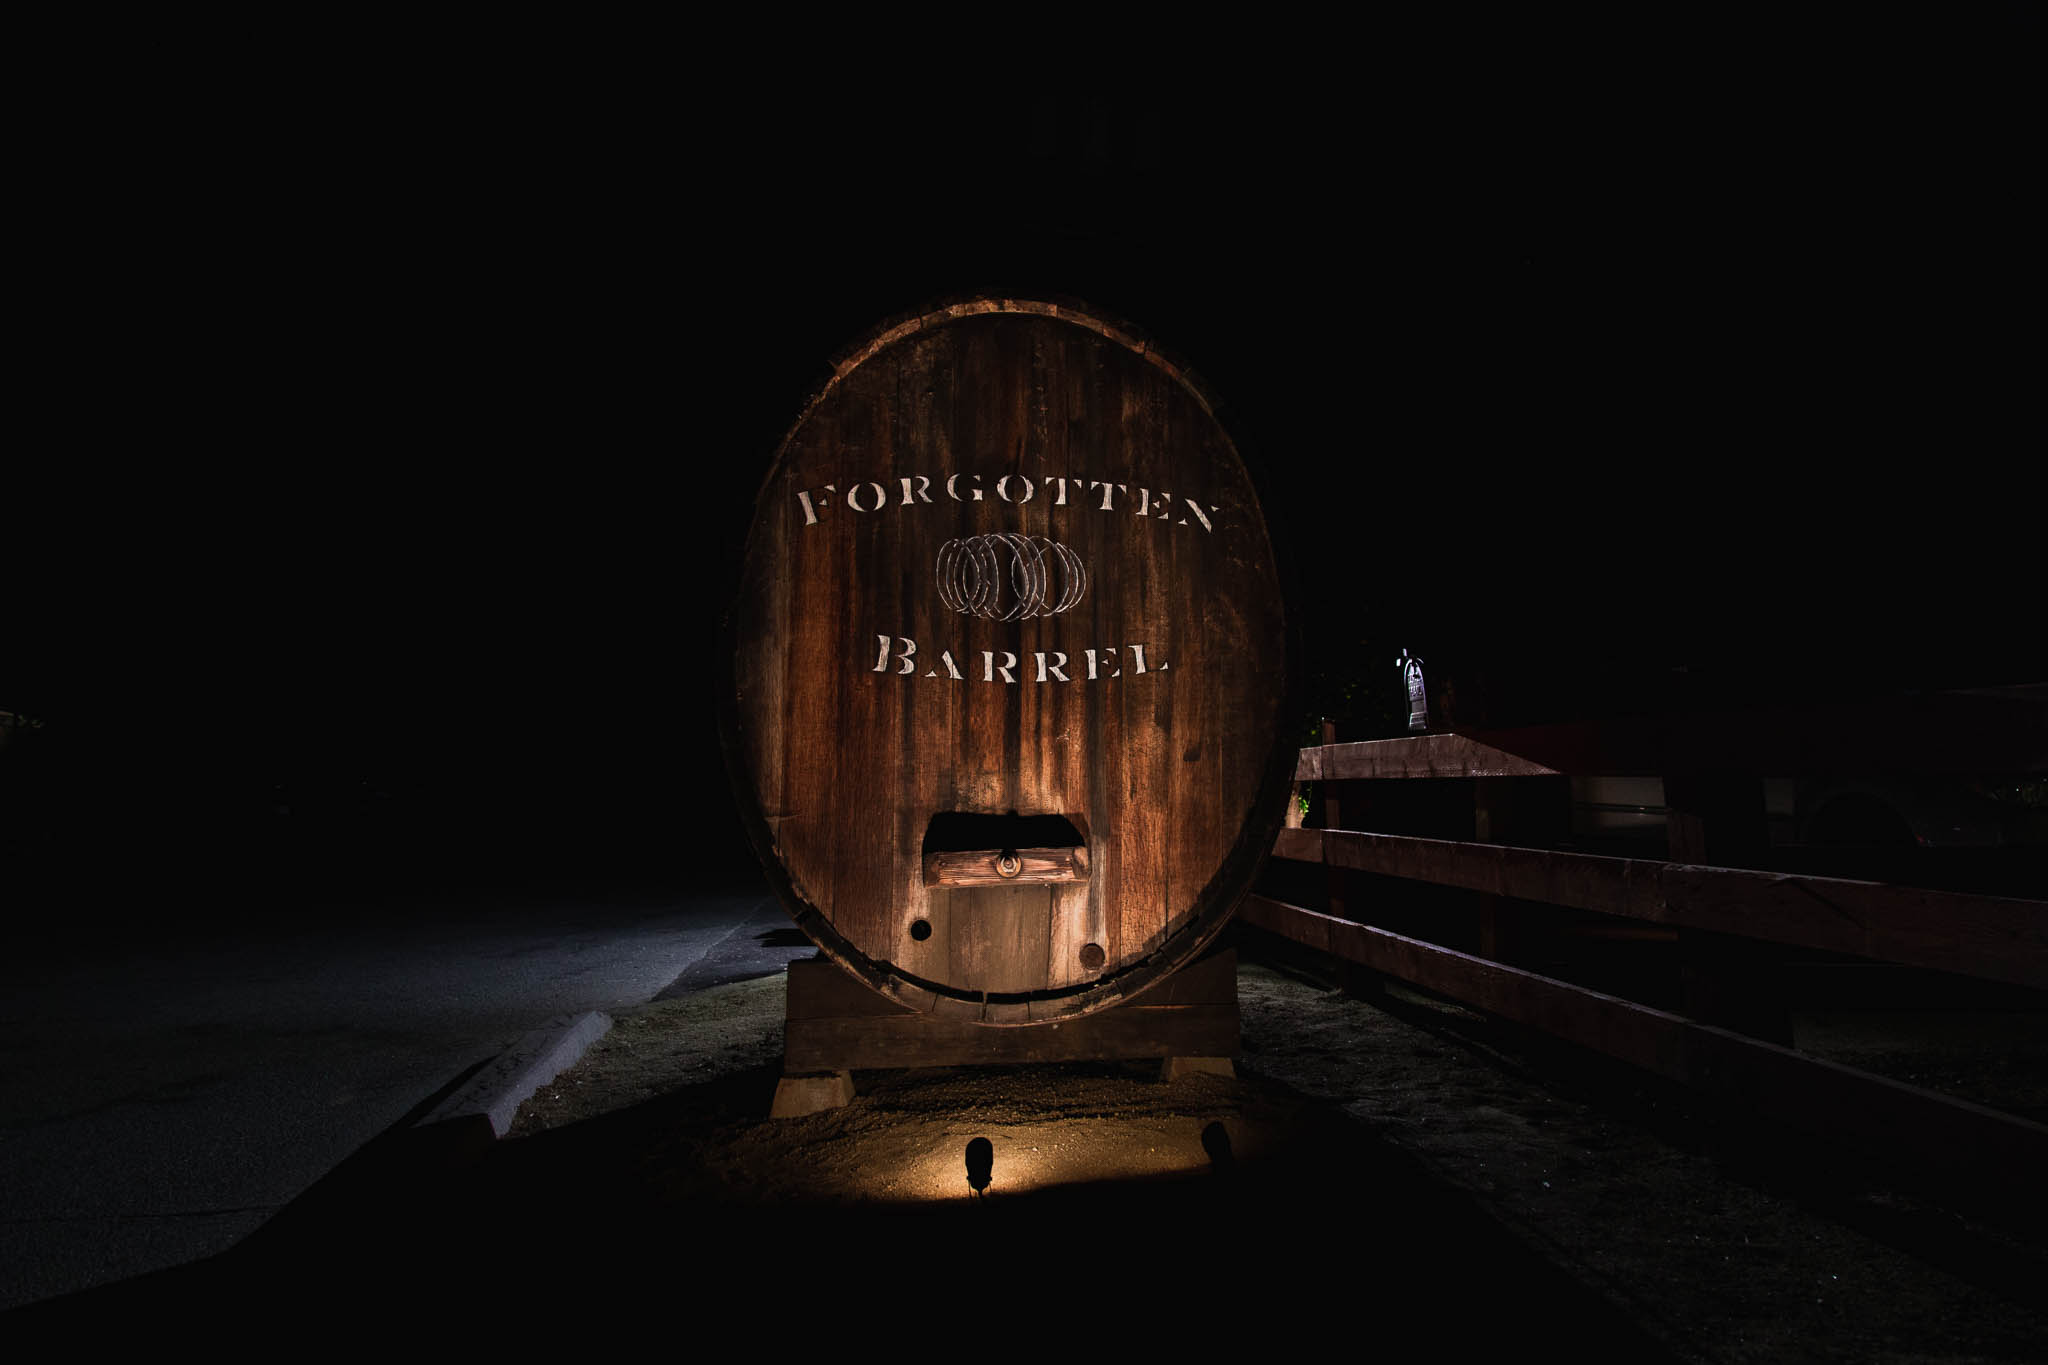 Handpainted Historic Barrel with Winery Branding Illuminated by light at night